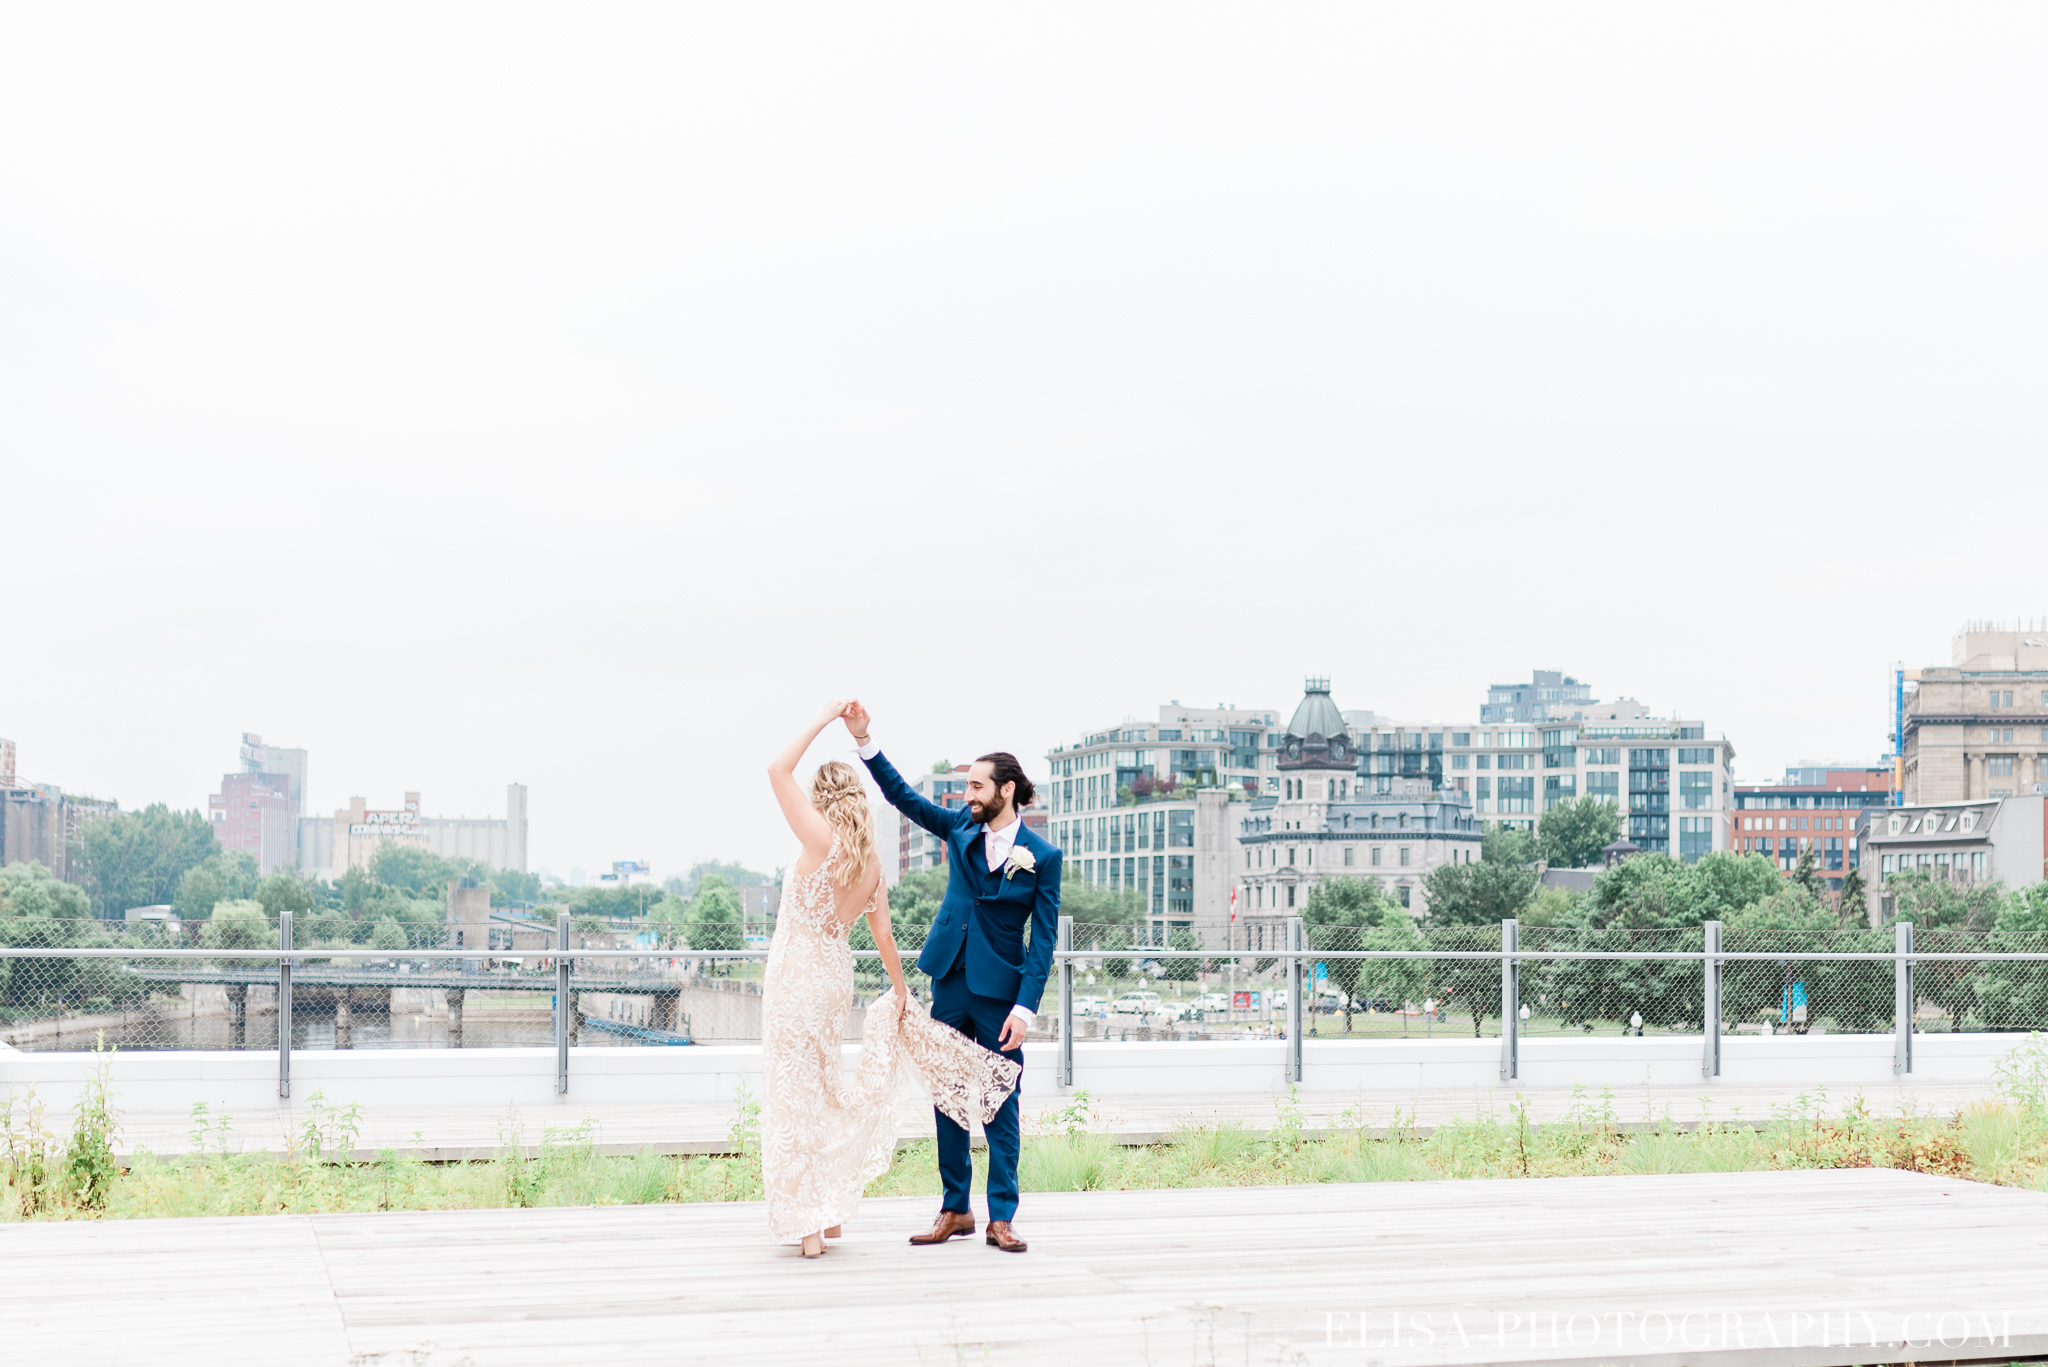 photo mariage downtown montreal urban wedding portrait elisa photographer 9298 - An elegant wedding under the marquee at the Forest and Stream Club in Montreal